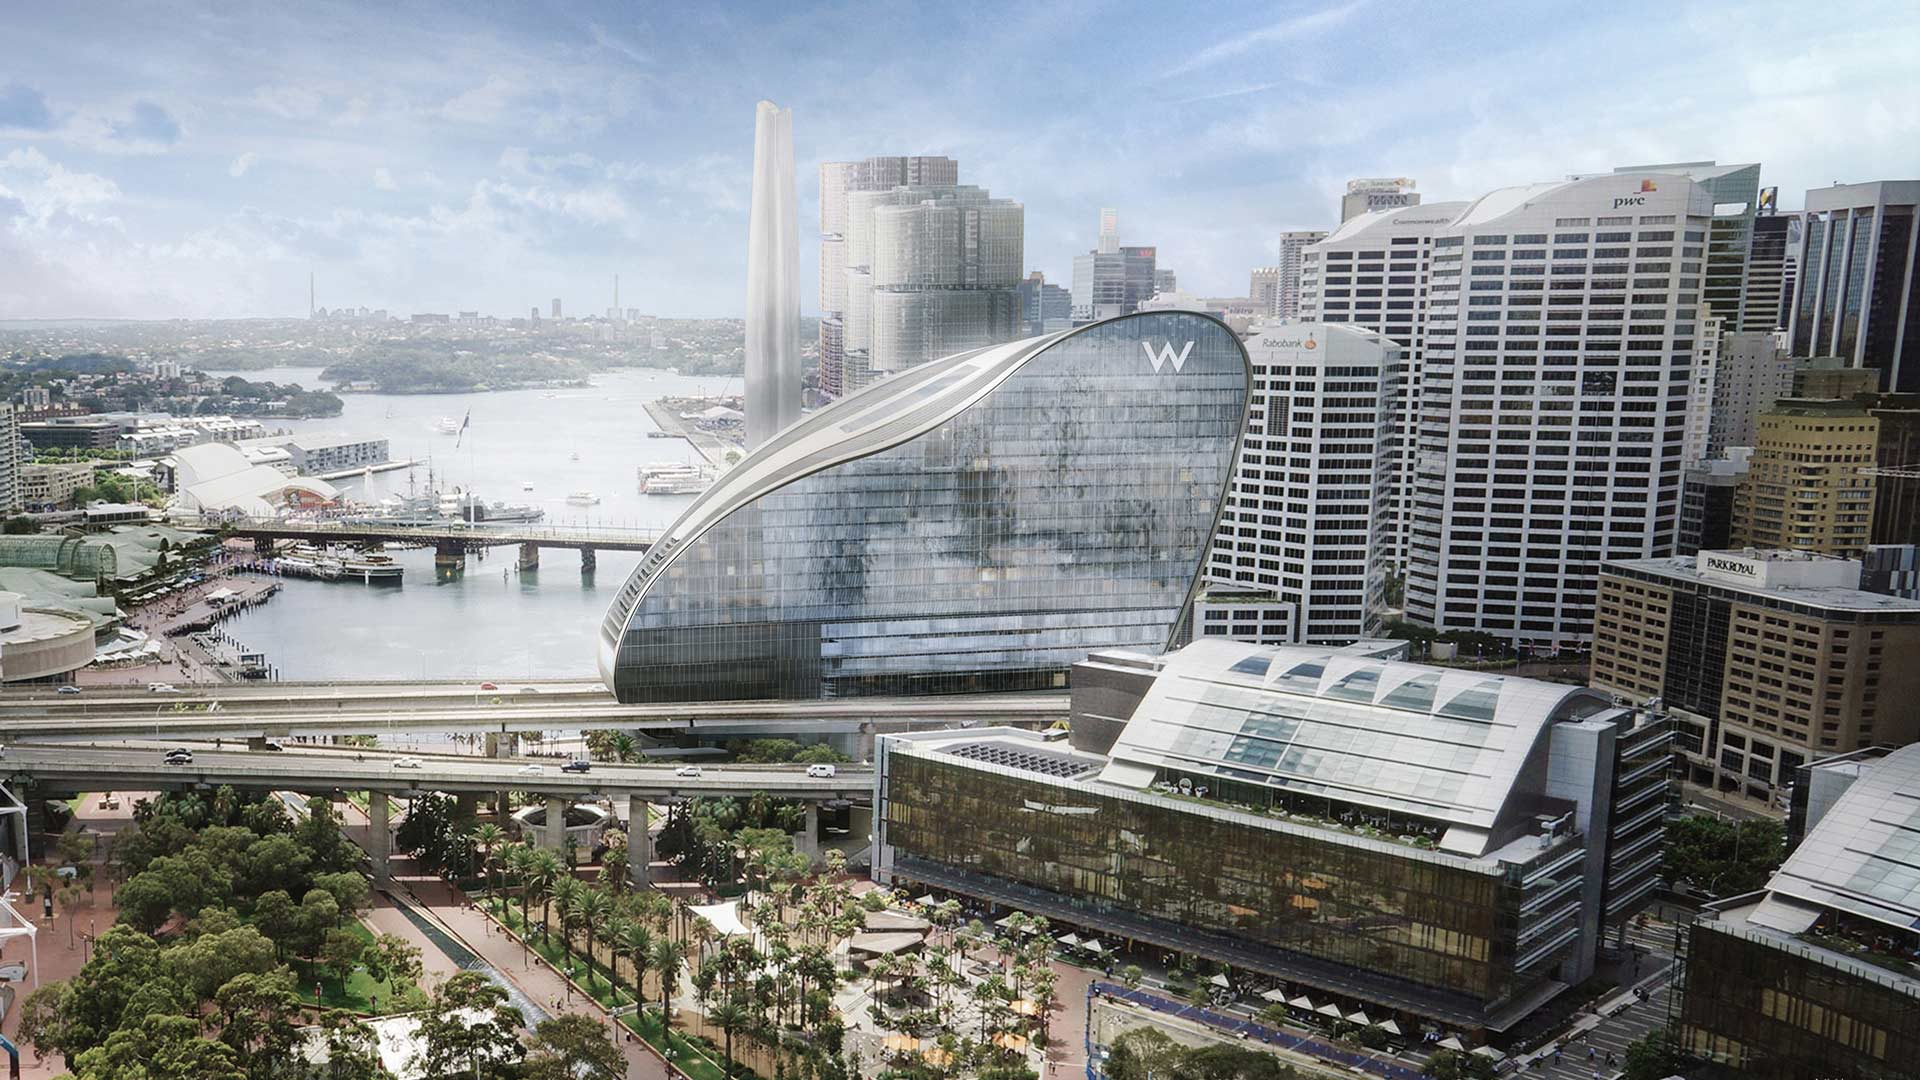 W Hotel Is Returning to Sydney as Part of a Luxury Darling Harbour Development